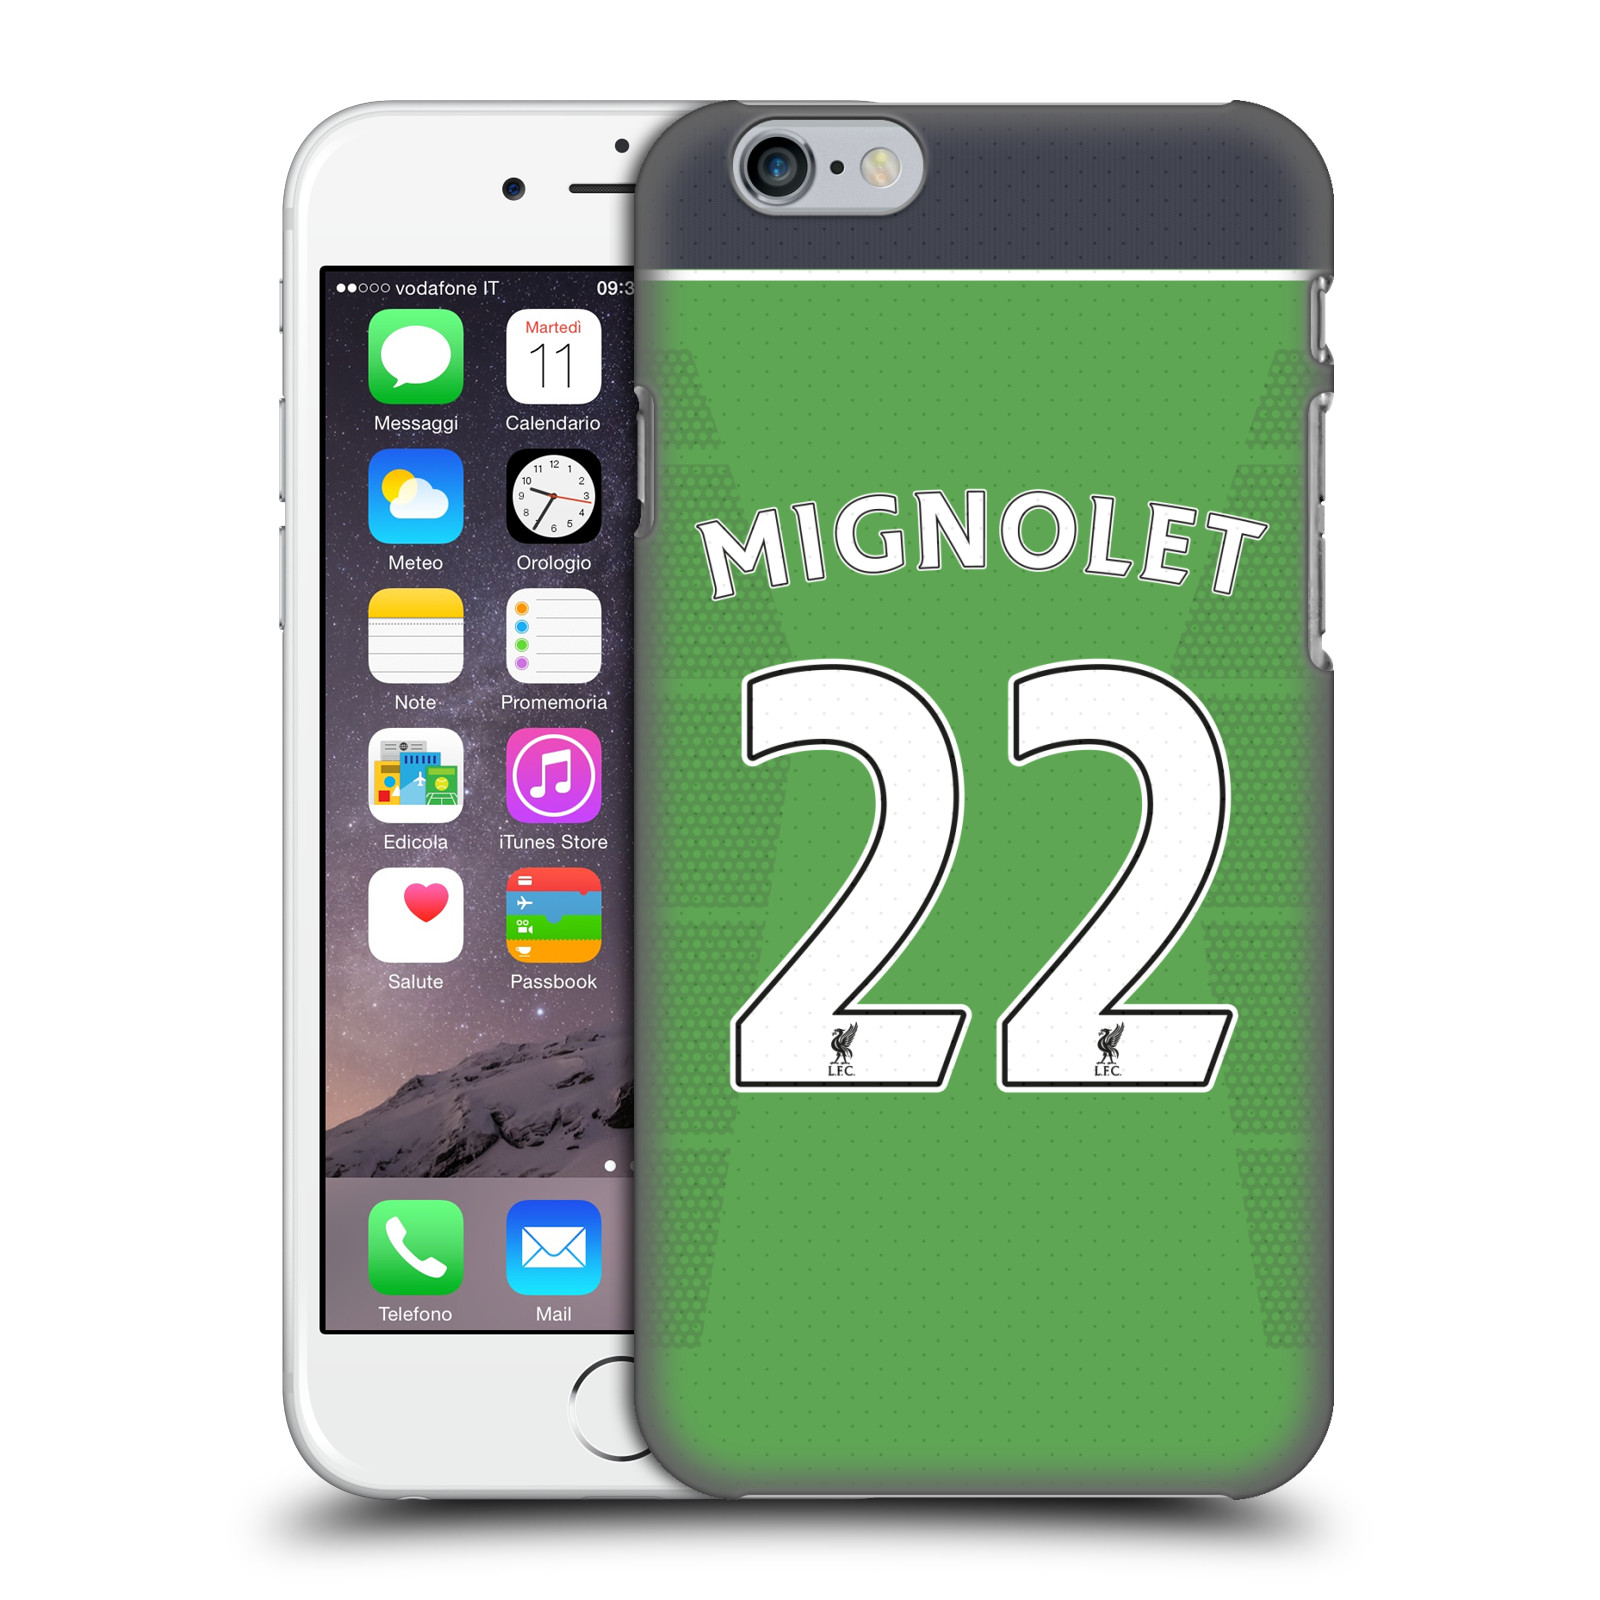 Liverpool FC LFC Players Home Kit 16/17 Group 1-Mignolet